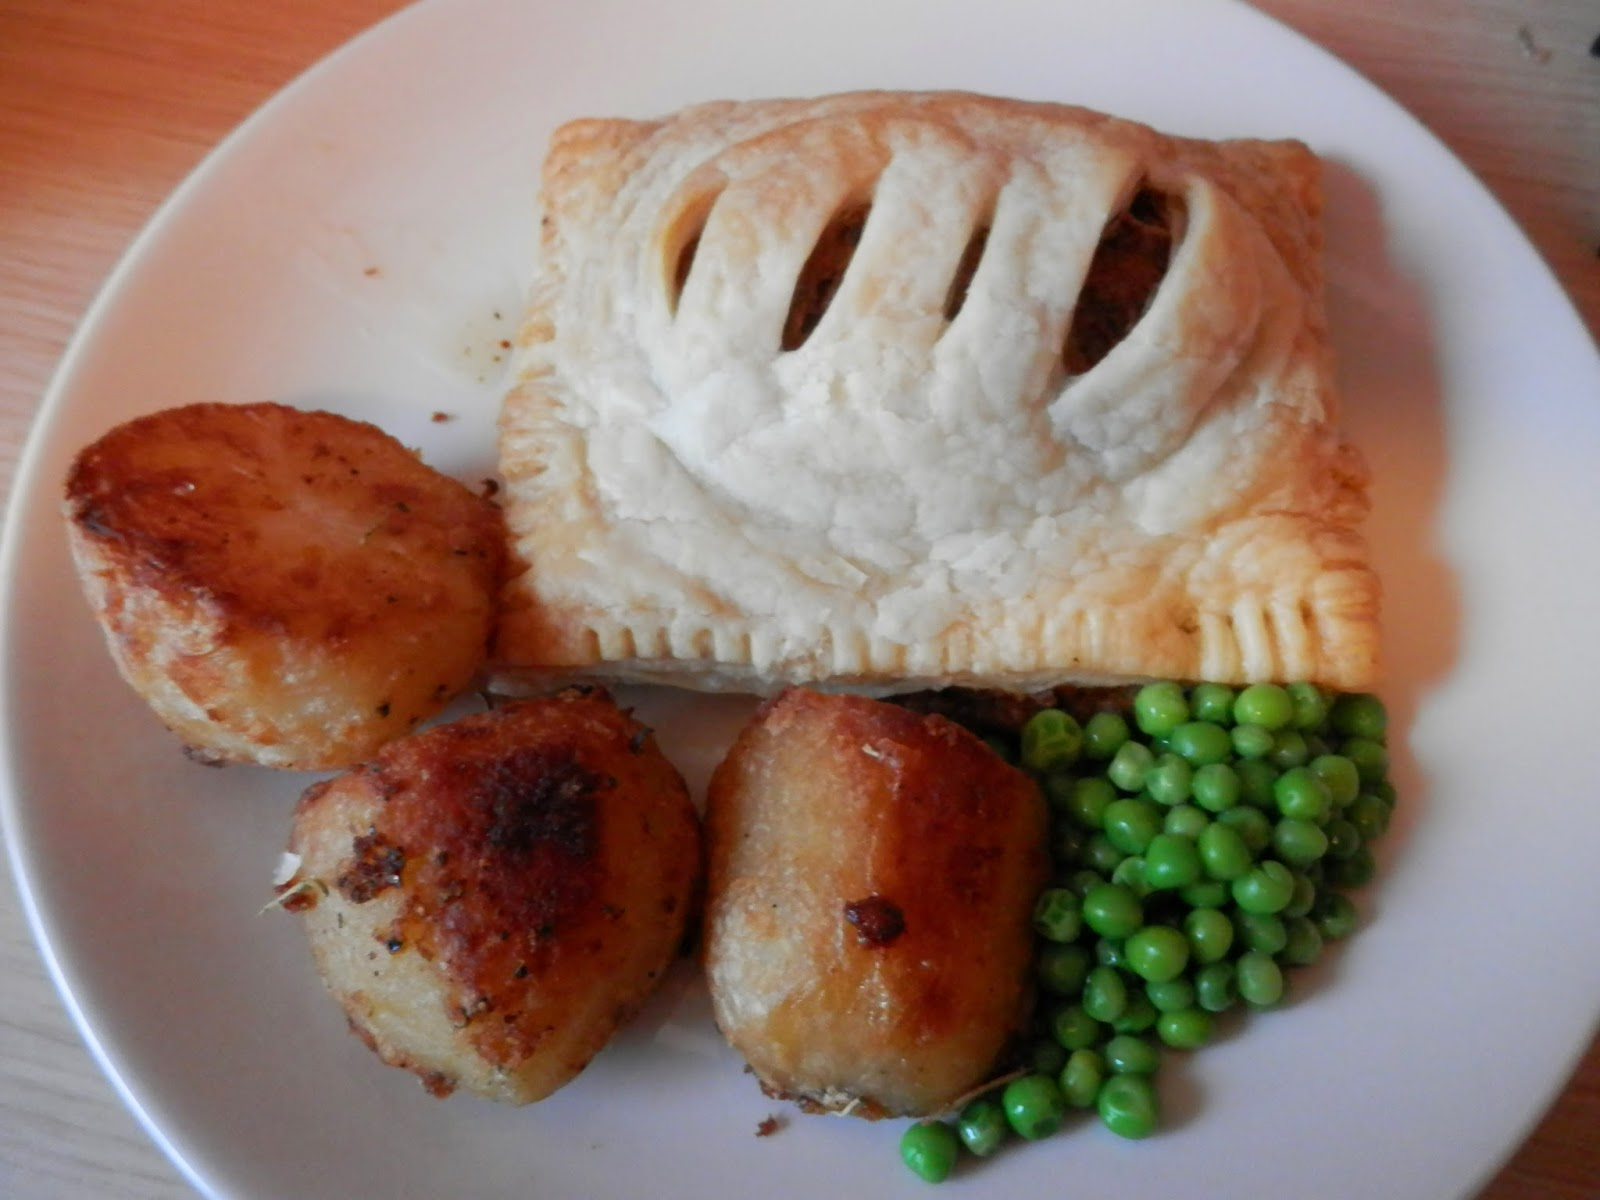 What do vegans eat? vegan wellington, it's made from Linda McCartney Sausages, blended with herbs, shaped into a little loaf shape, covered in mushrooms, vegan pate and puff pastry